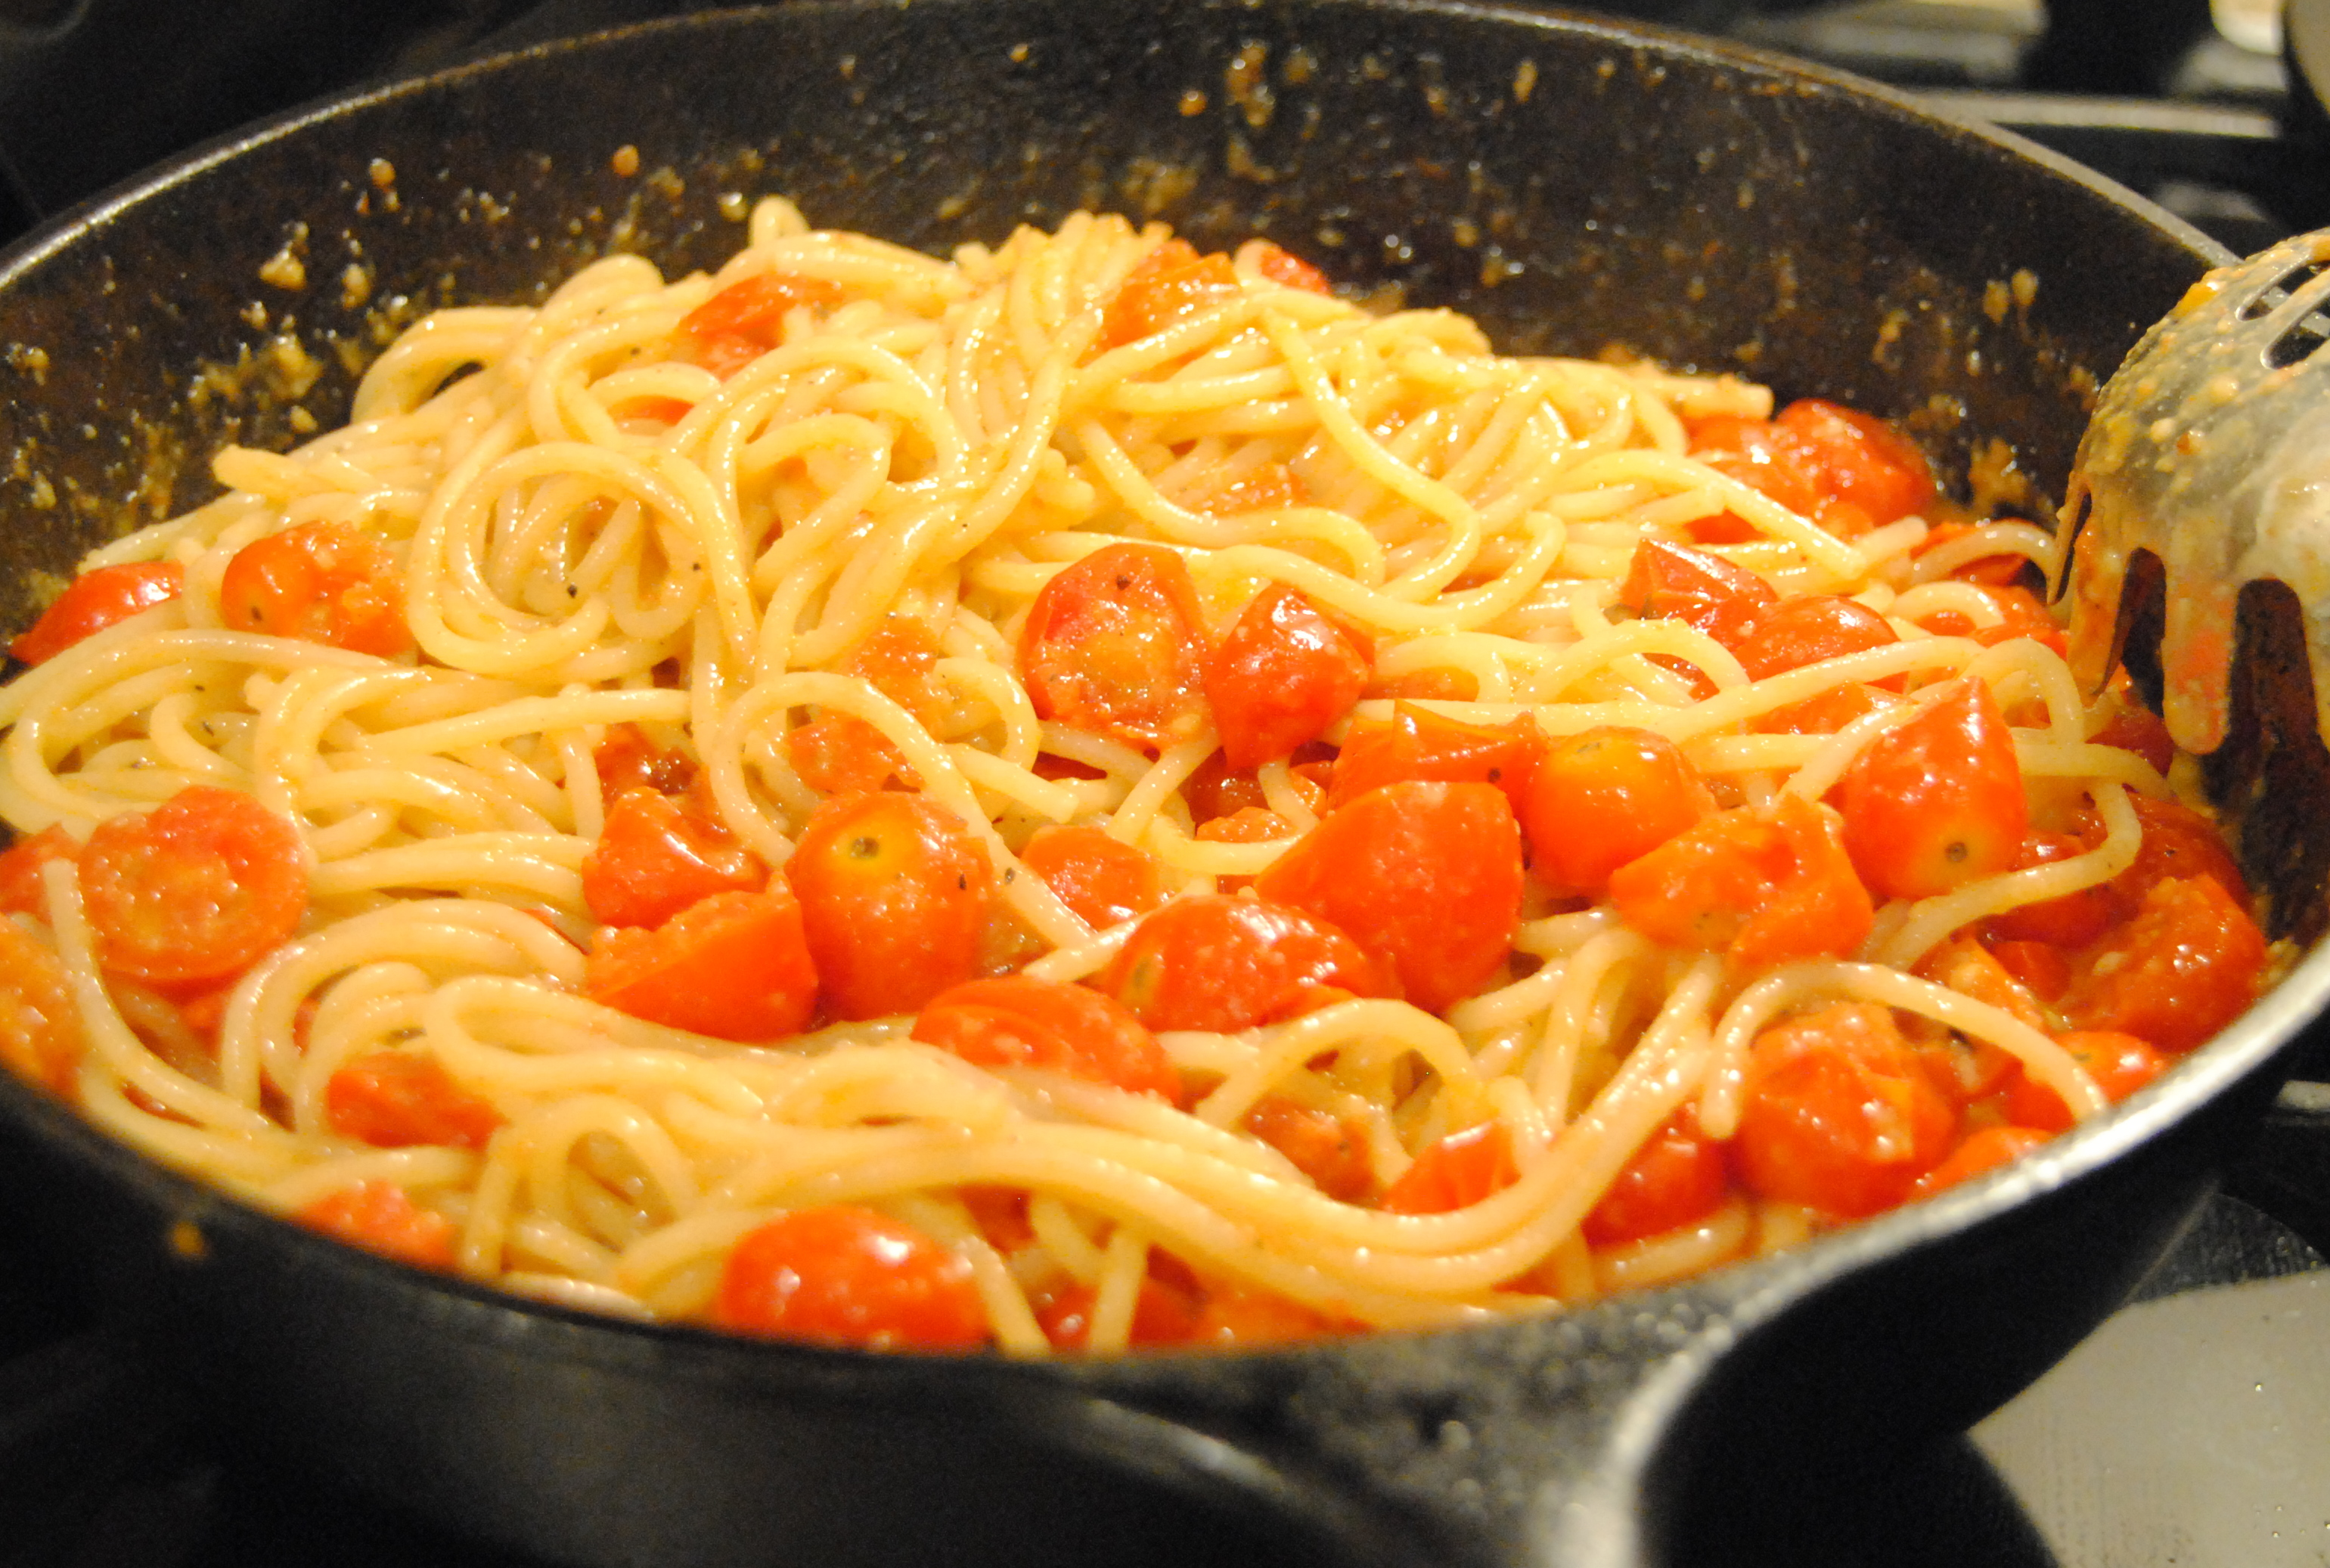 Spaghetti with cherry tomatoes and pecorino cheese